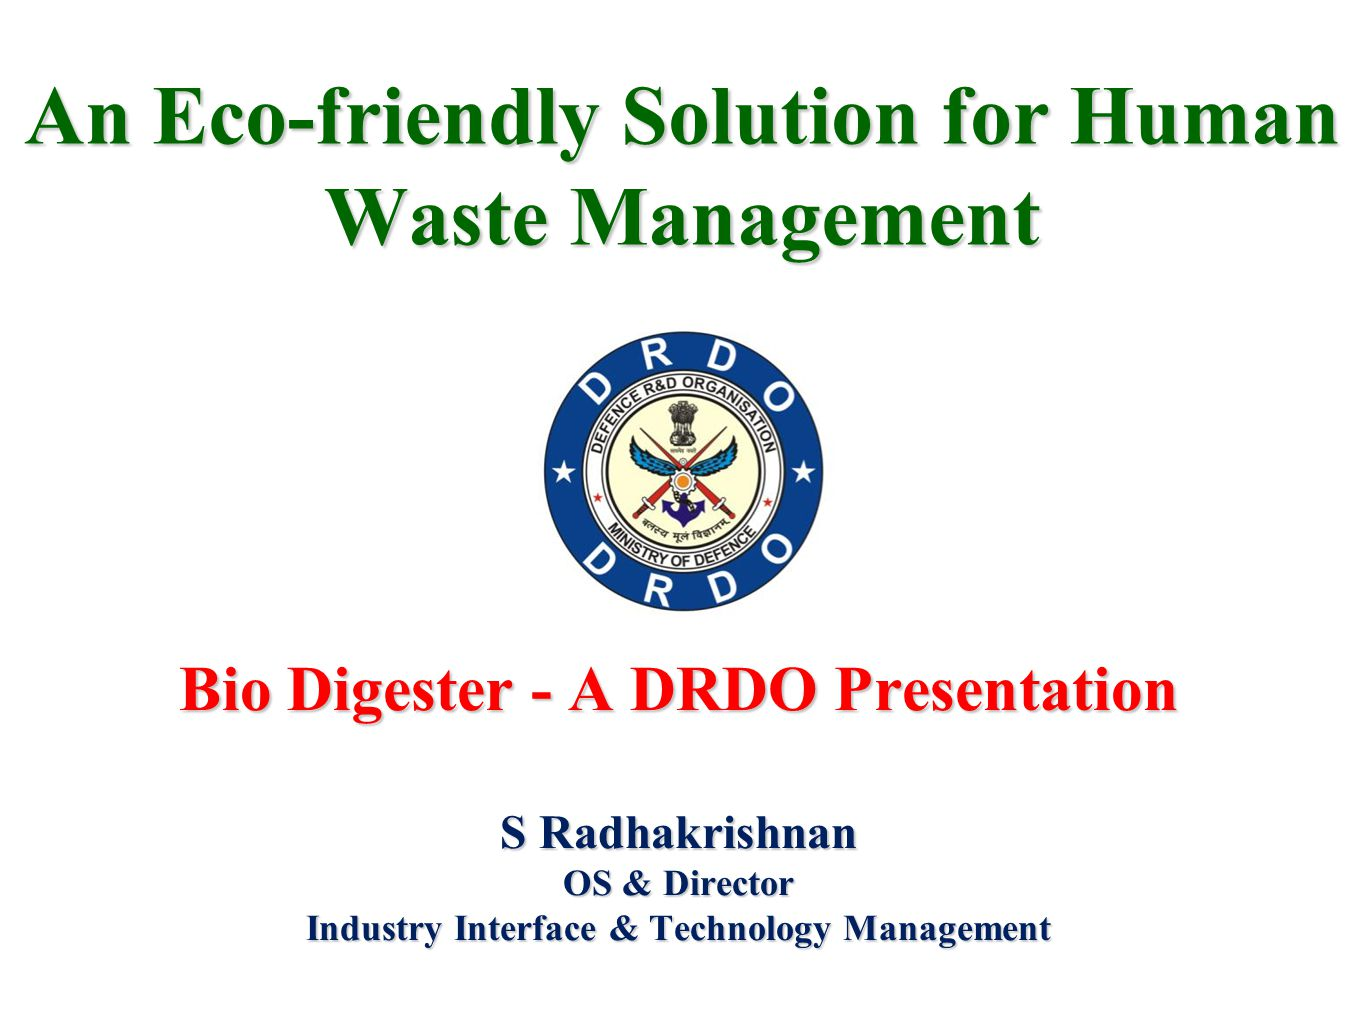 An Eco-friendly Solution for Human Waste Management